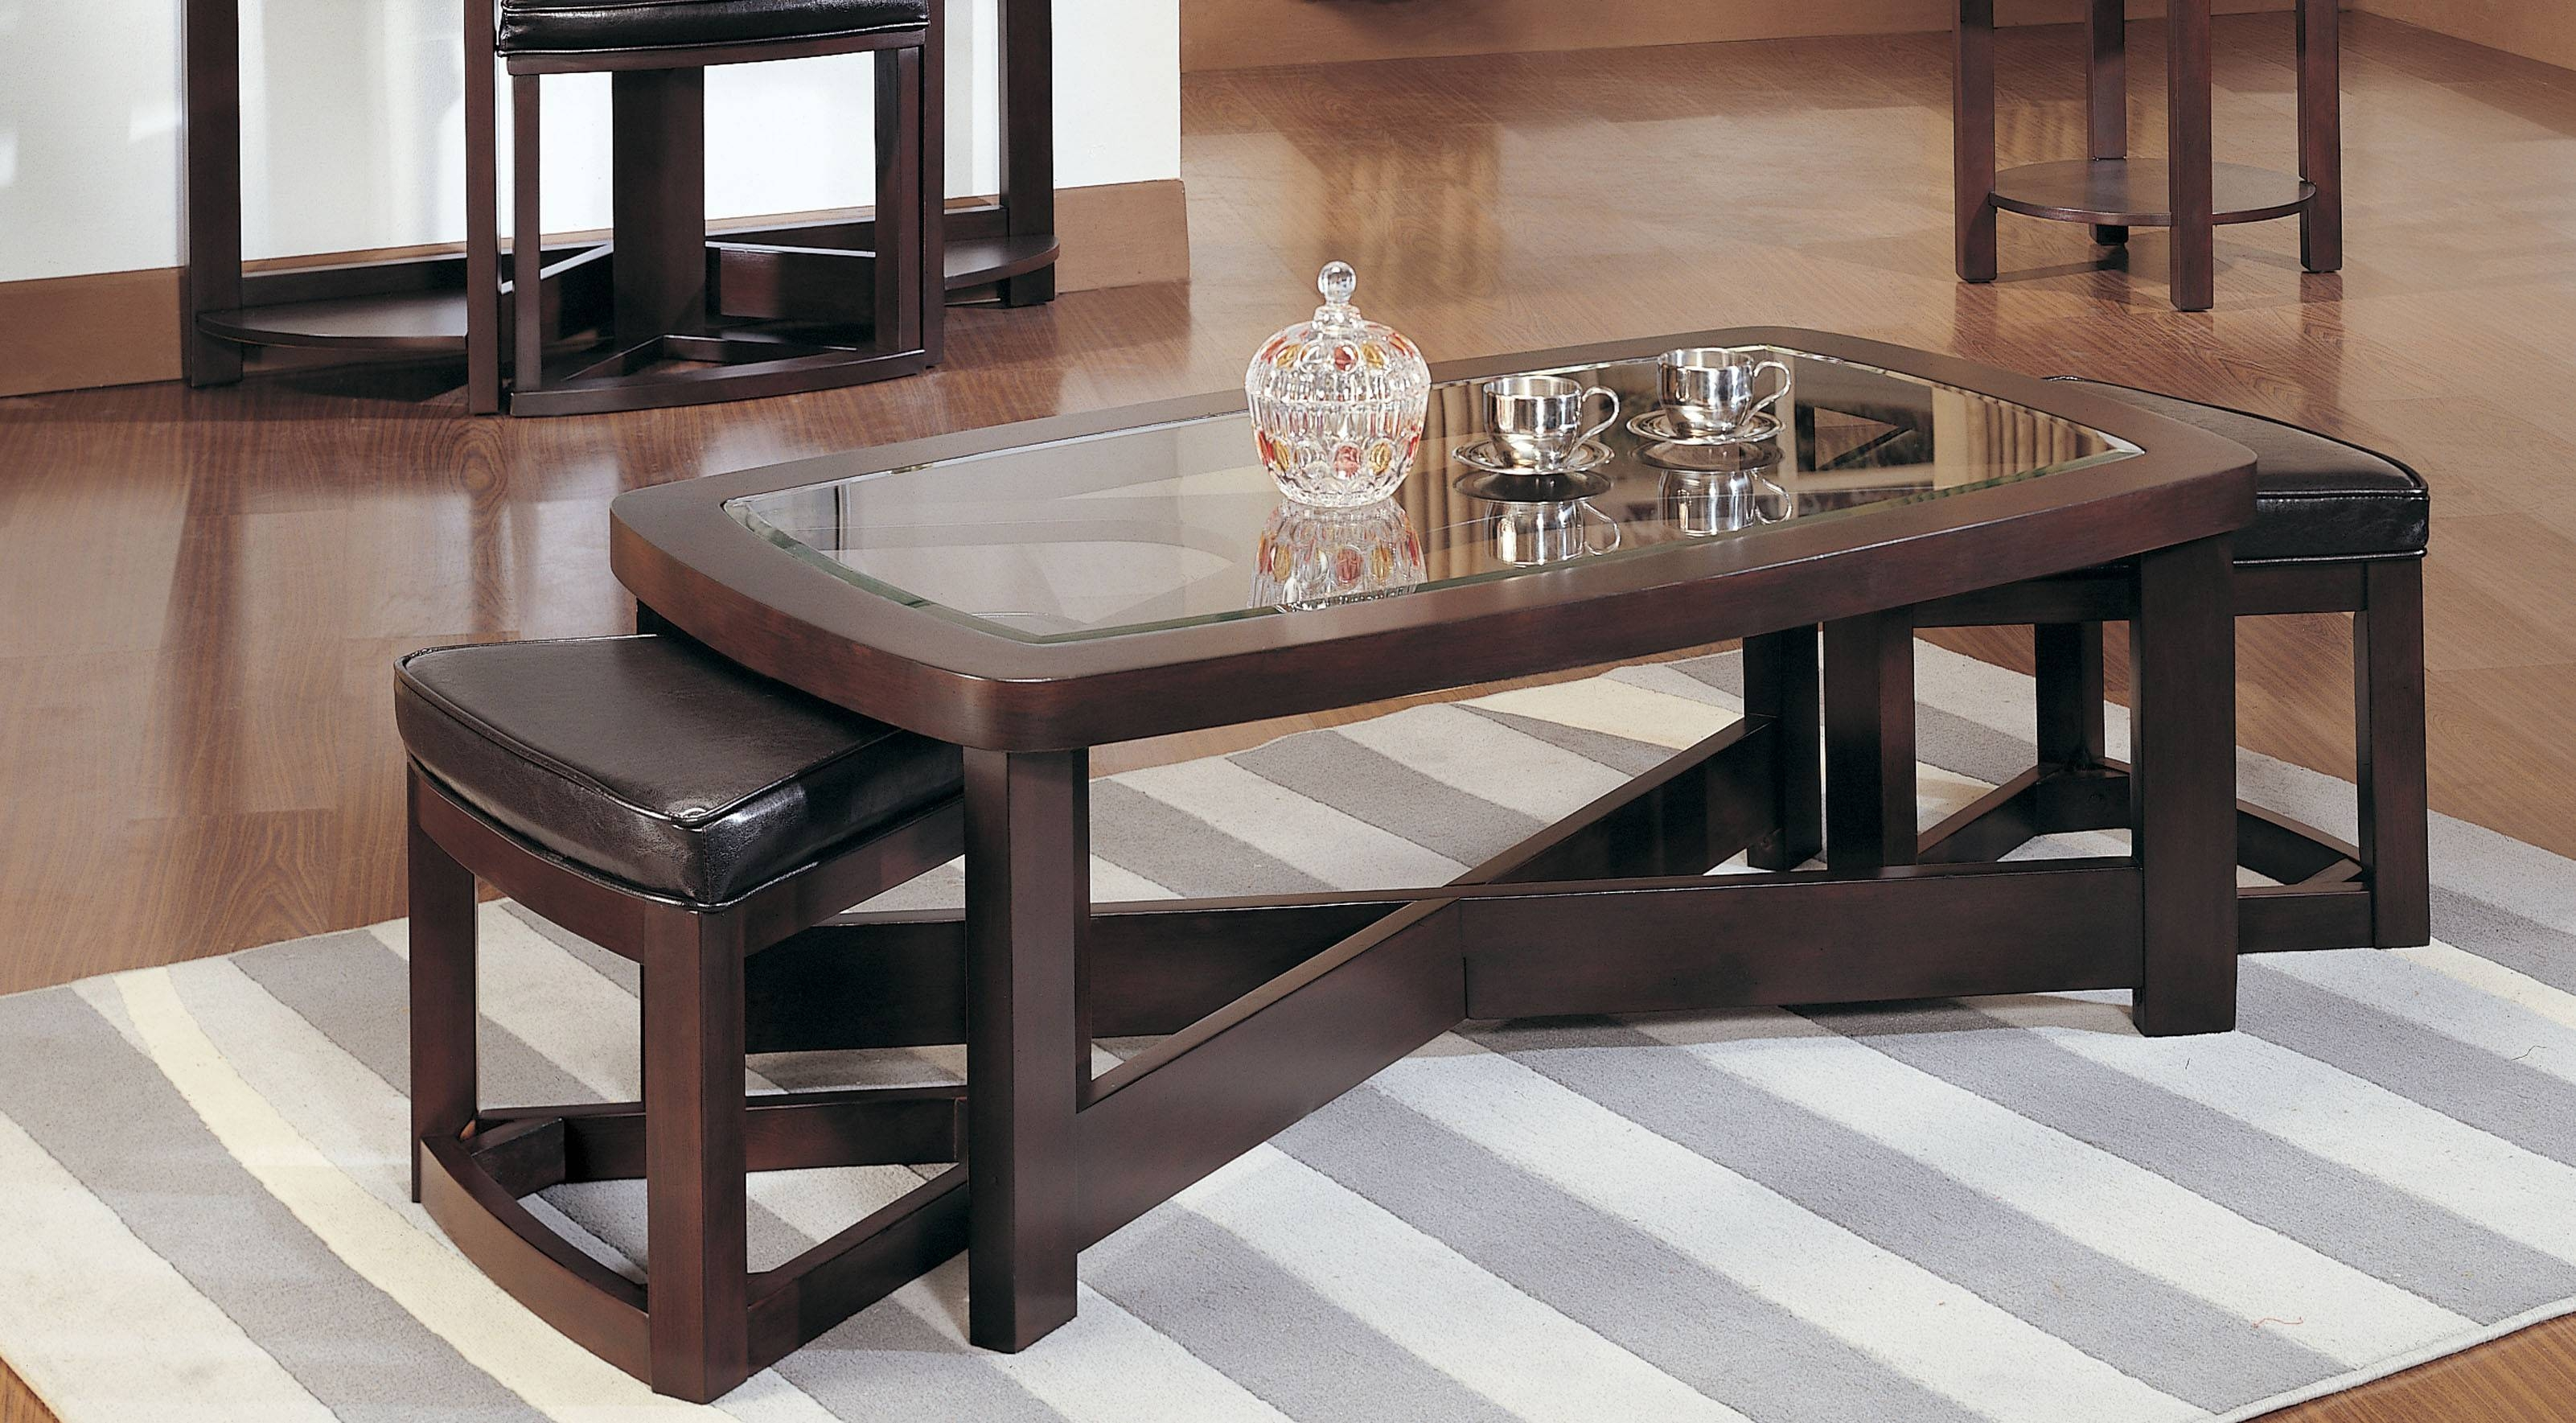 Furniture: Luxury Coffee Table With Stools For Living Room for Coffee Table With Chairs (Image 23 of 30)